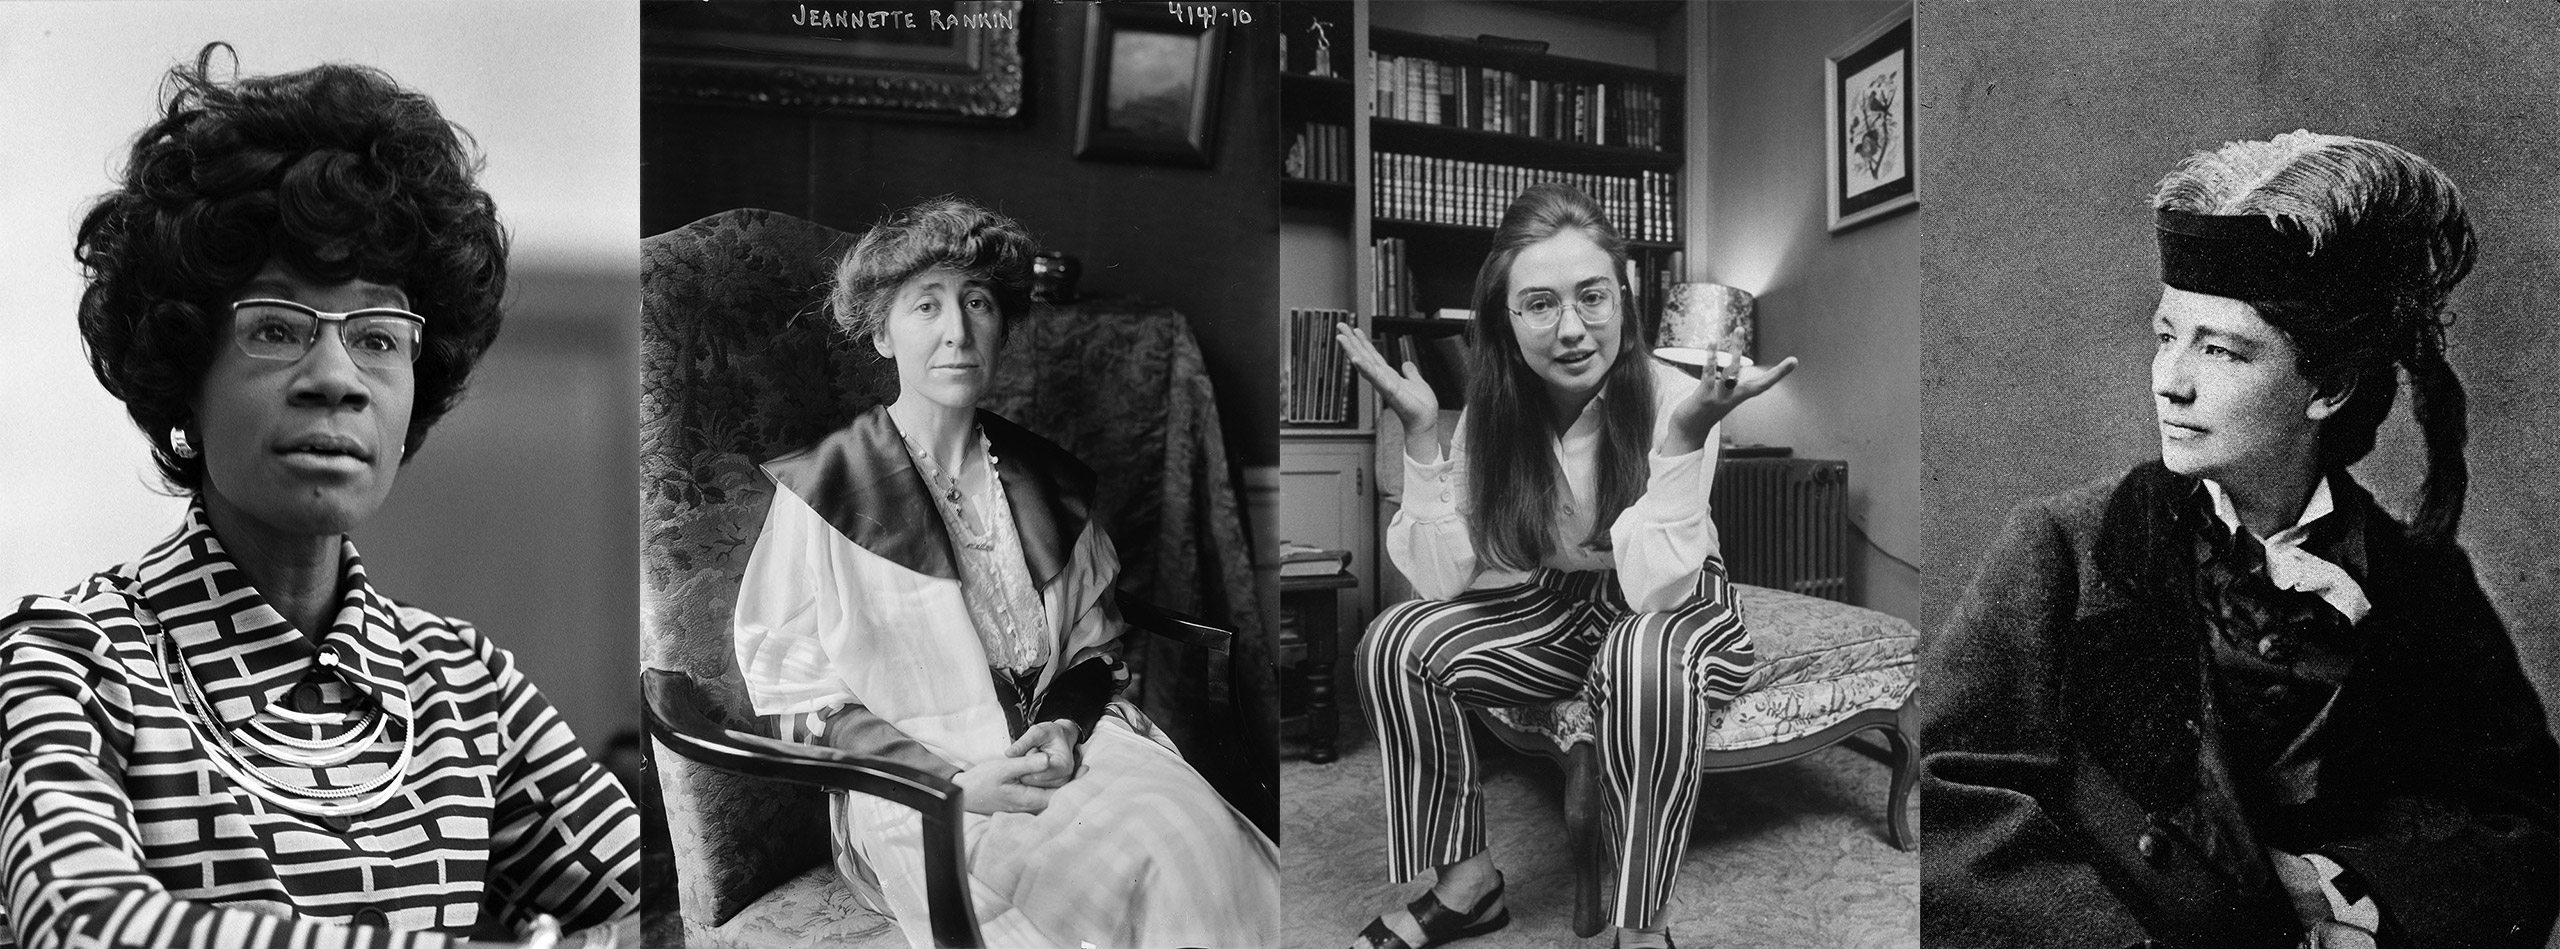 (L-R) Shirley Chisholm, Jeanette Rankin, Hillary Clinton, Victoria Woodhull.